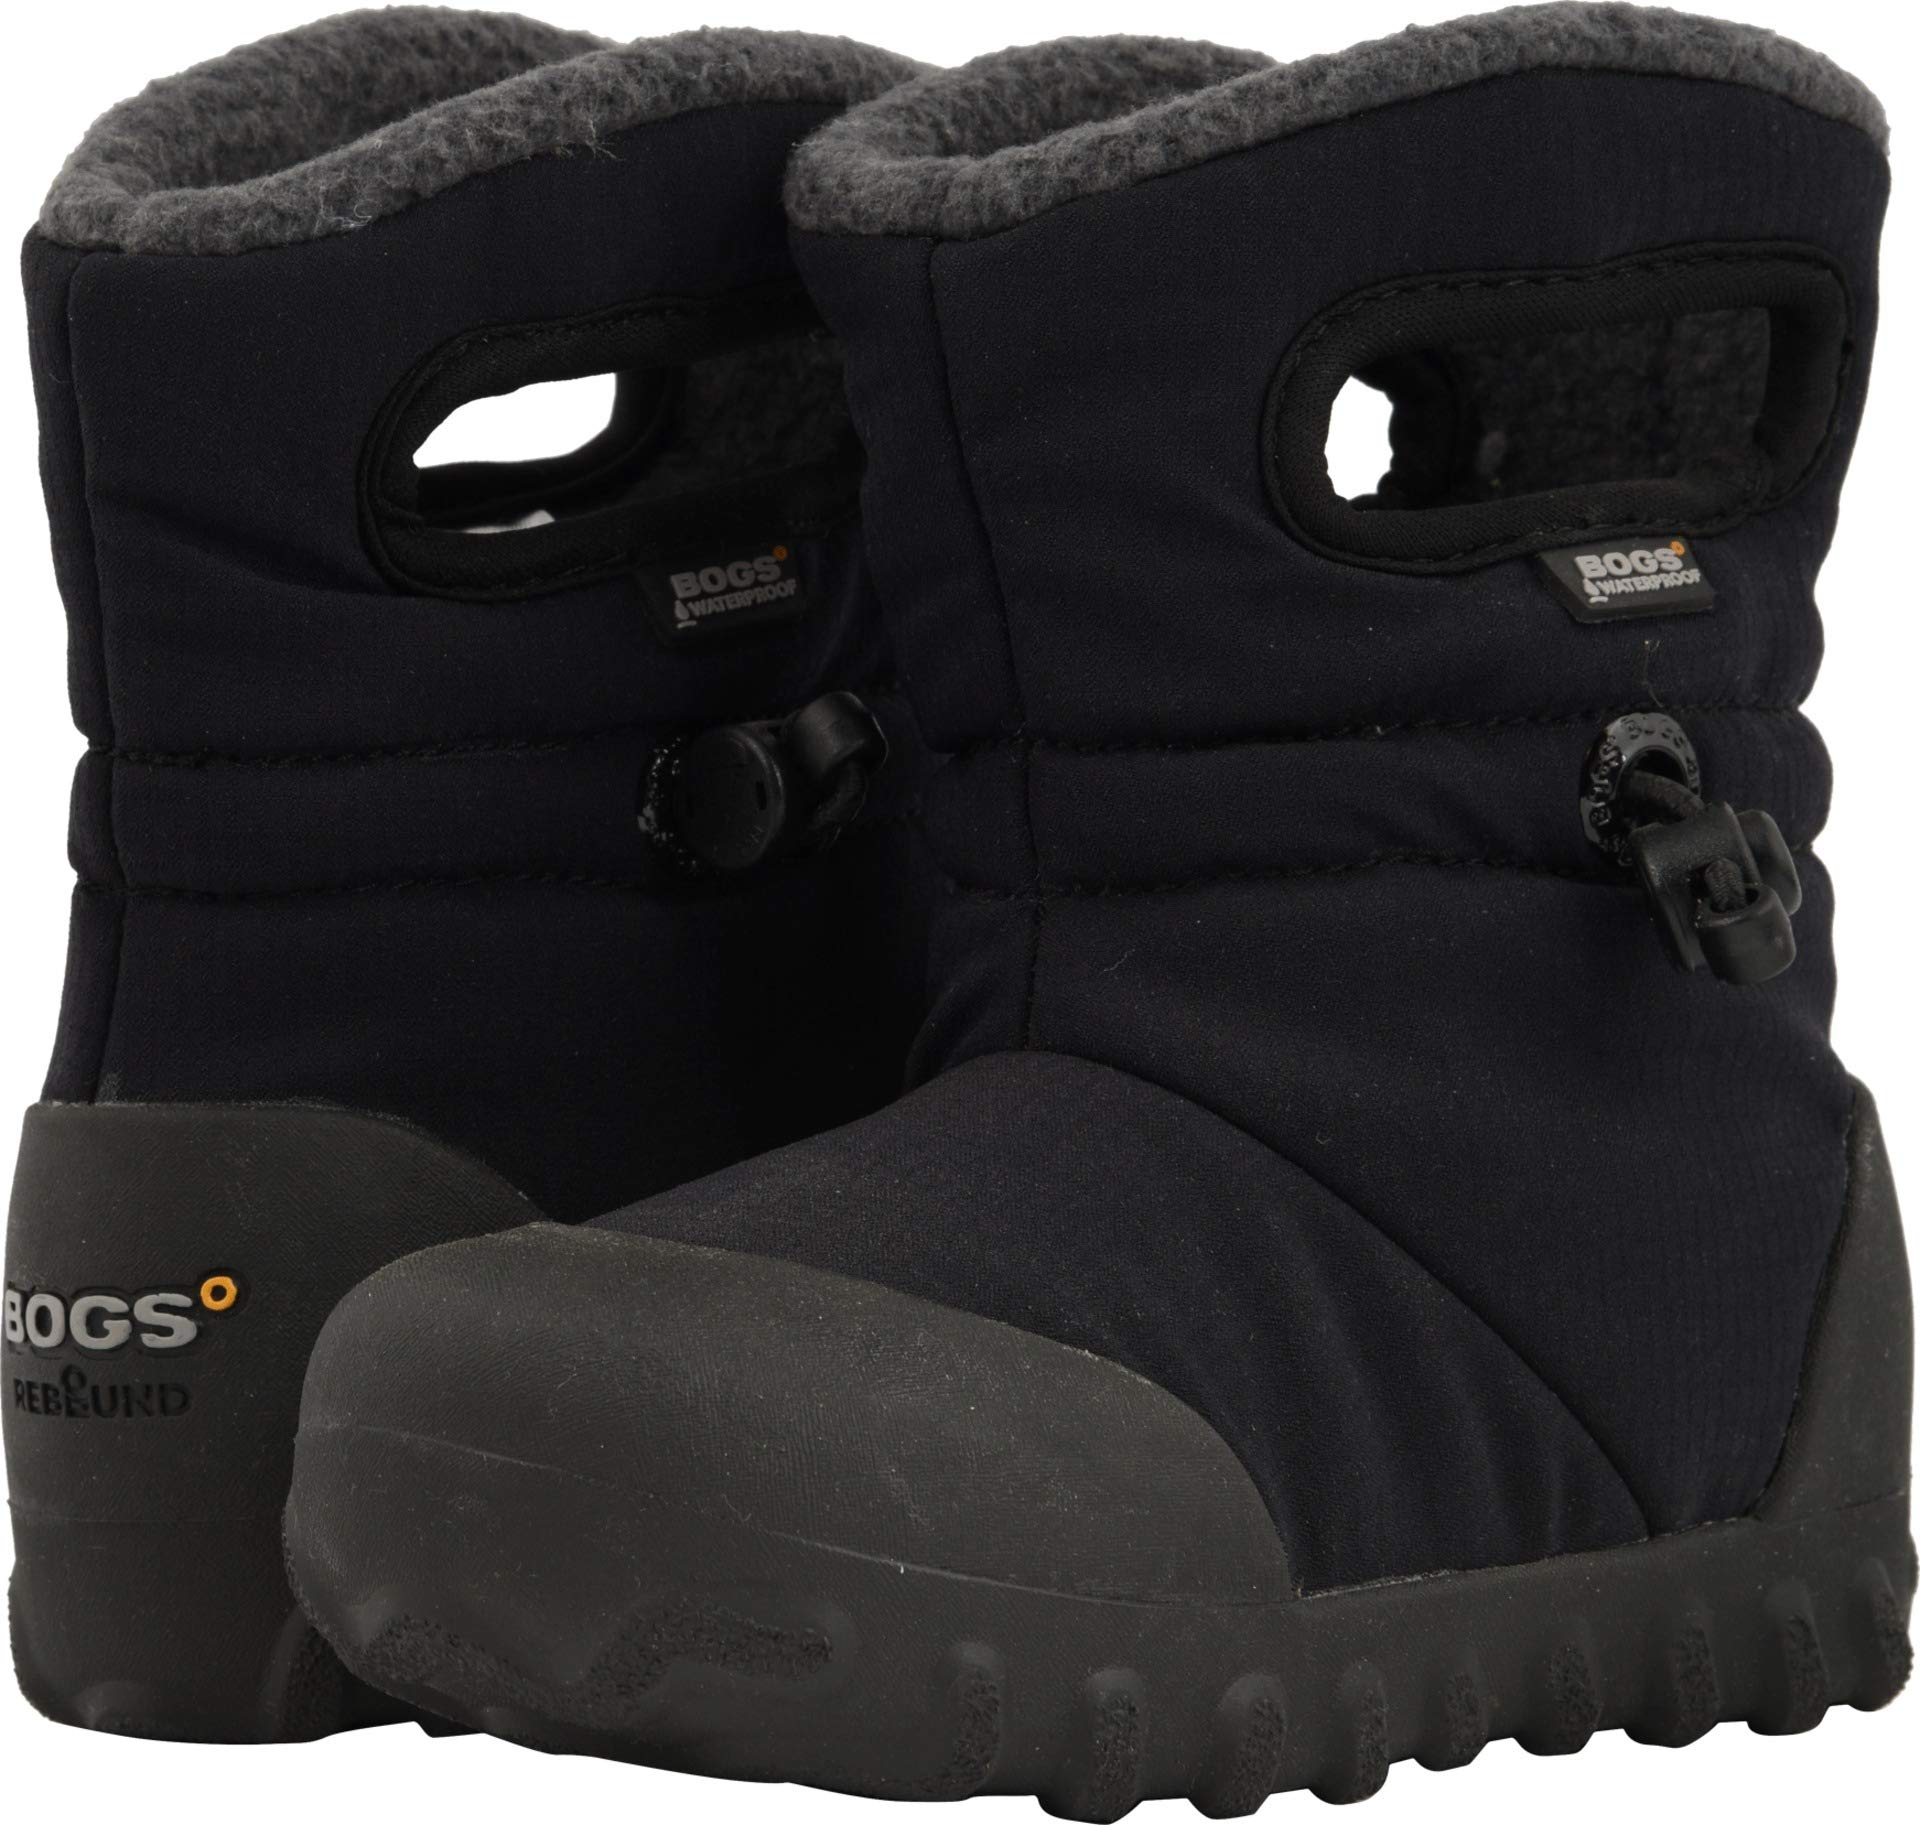 fabe0e82d121 Galleon - Bogs Kids B-Moc Puff Boot Black 6